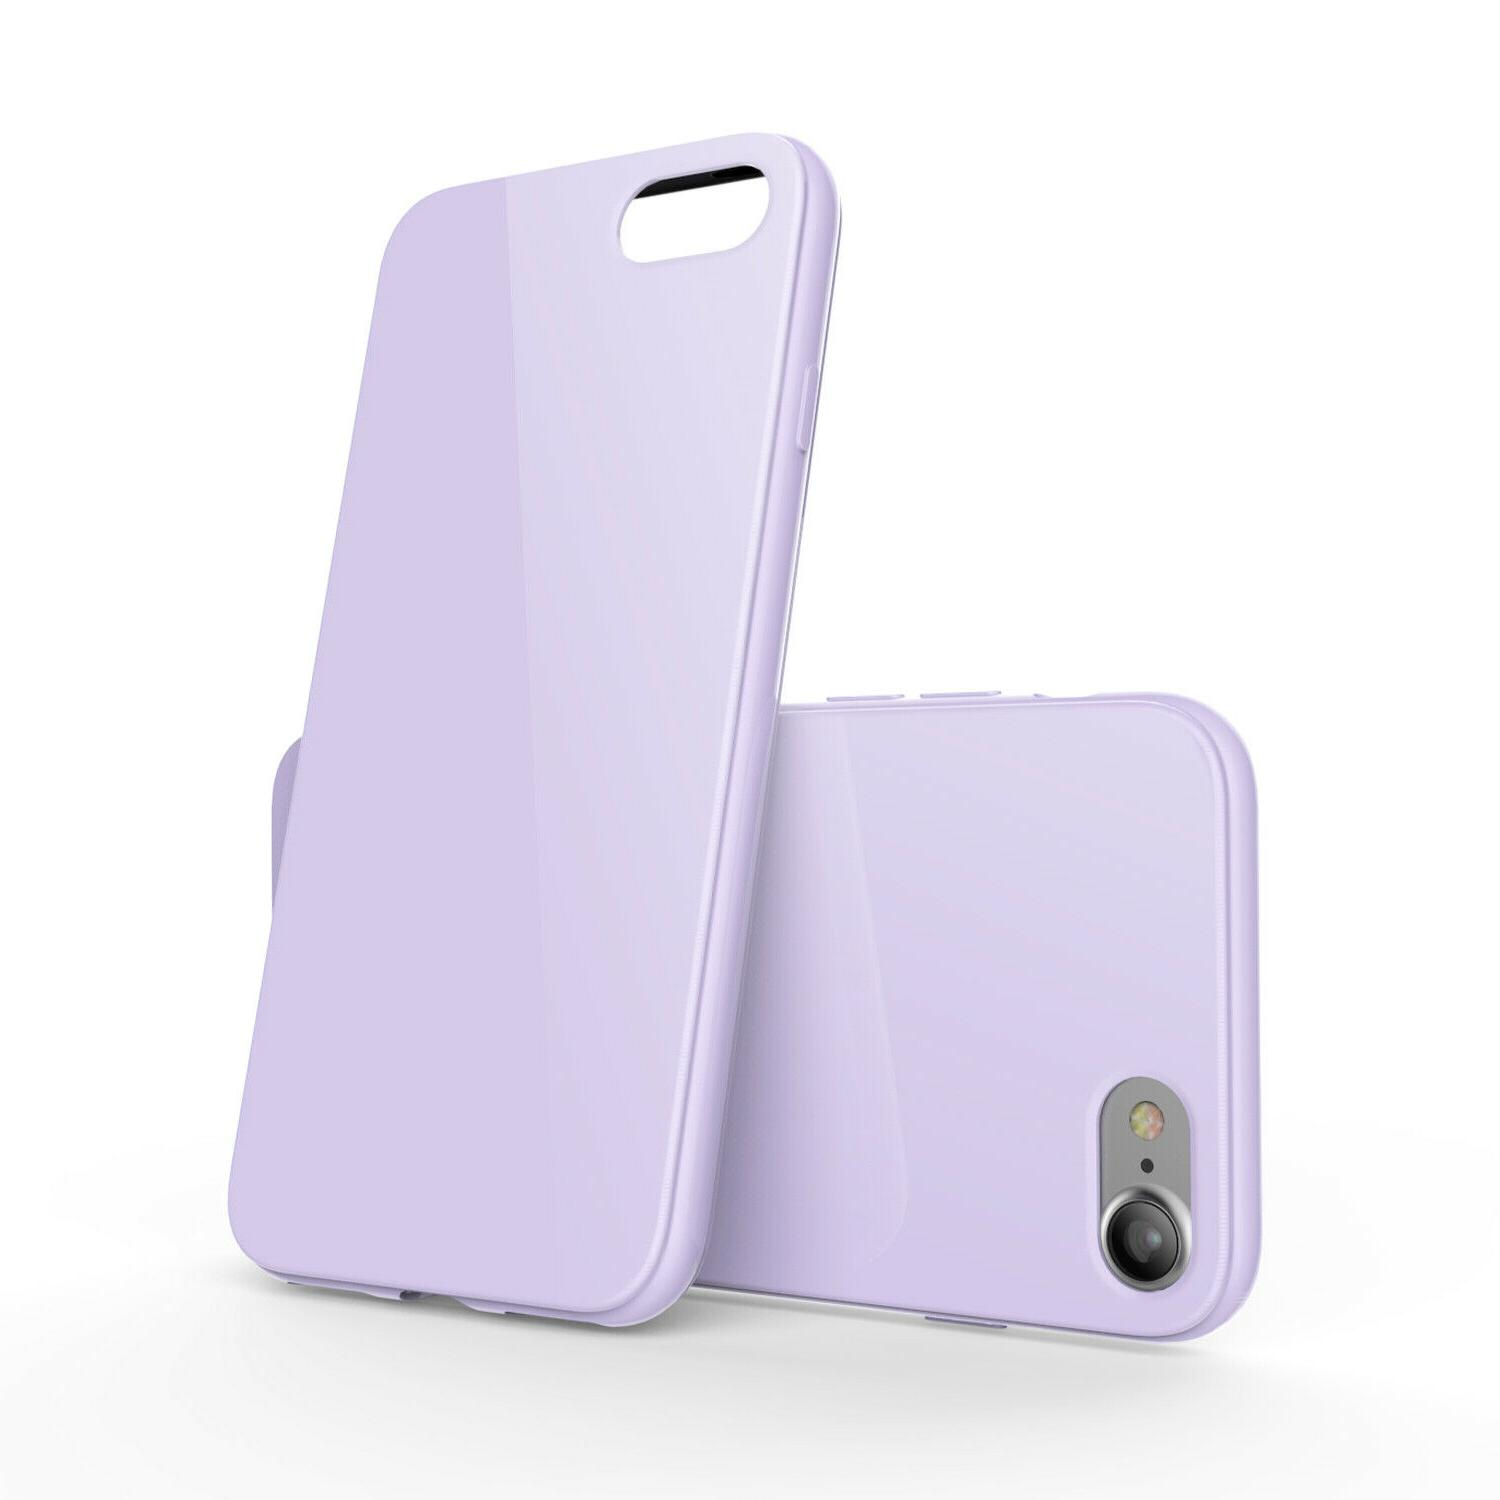 iPhone 11 Pro Case 6 8 6S Plus XR Silicone Cover